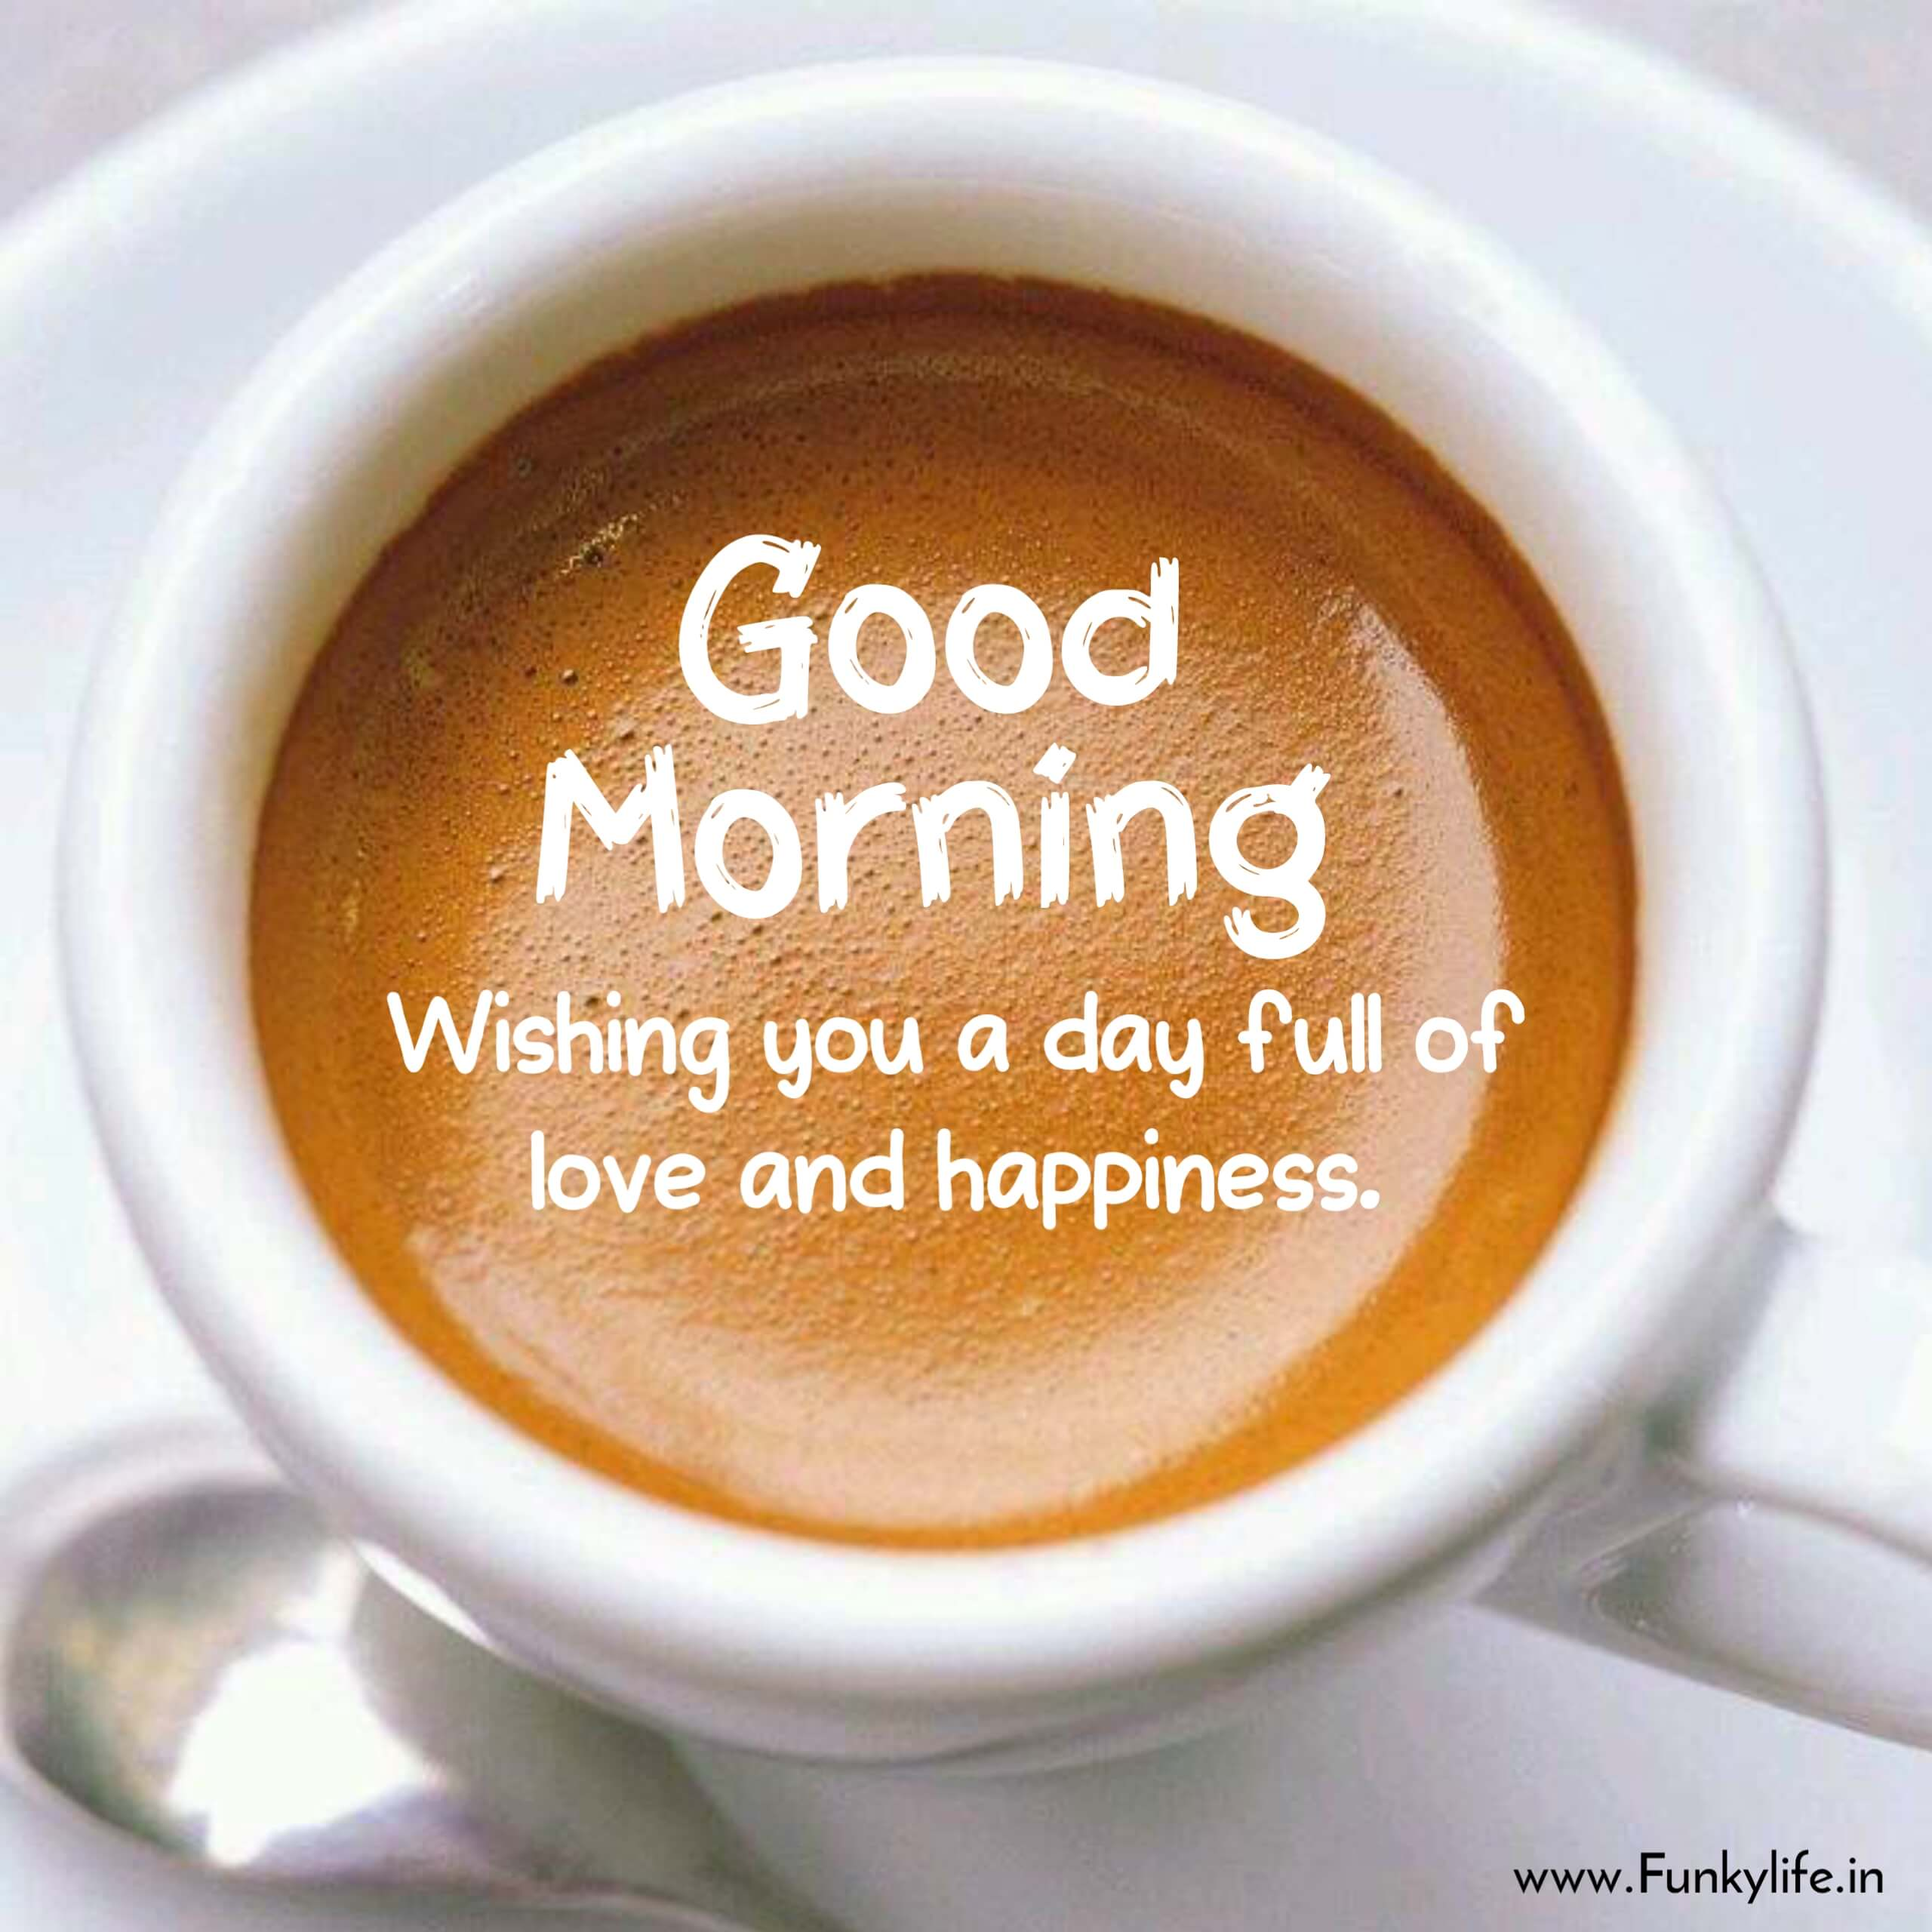 Good morning Coffee wishes pic